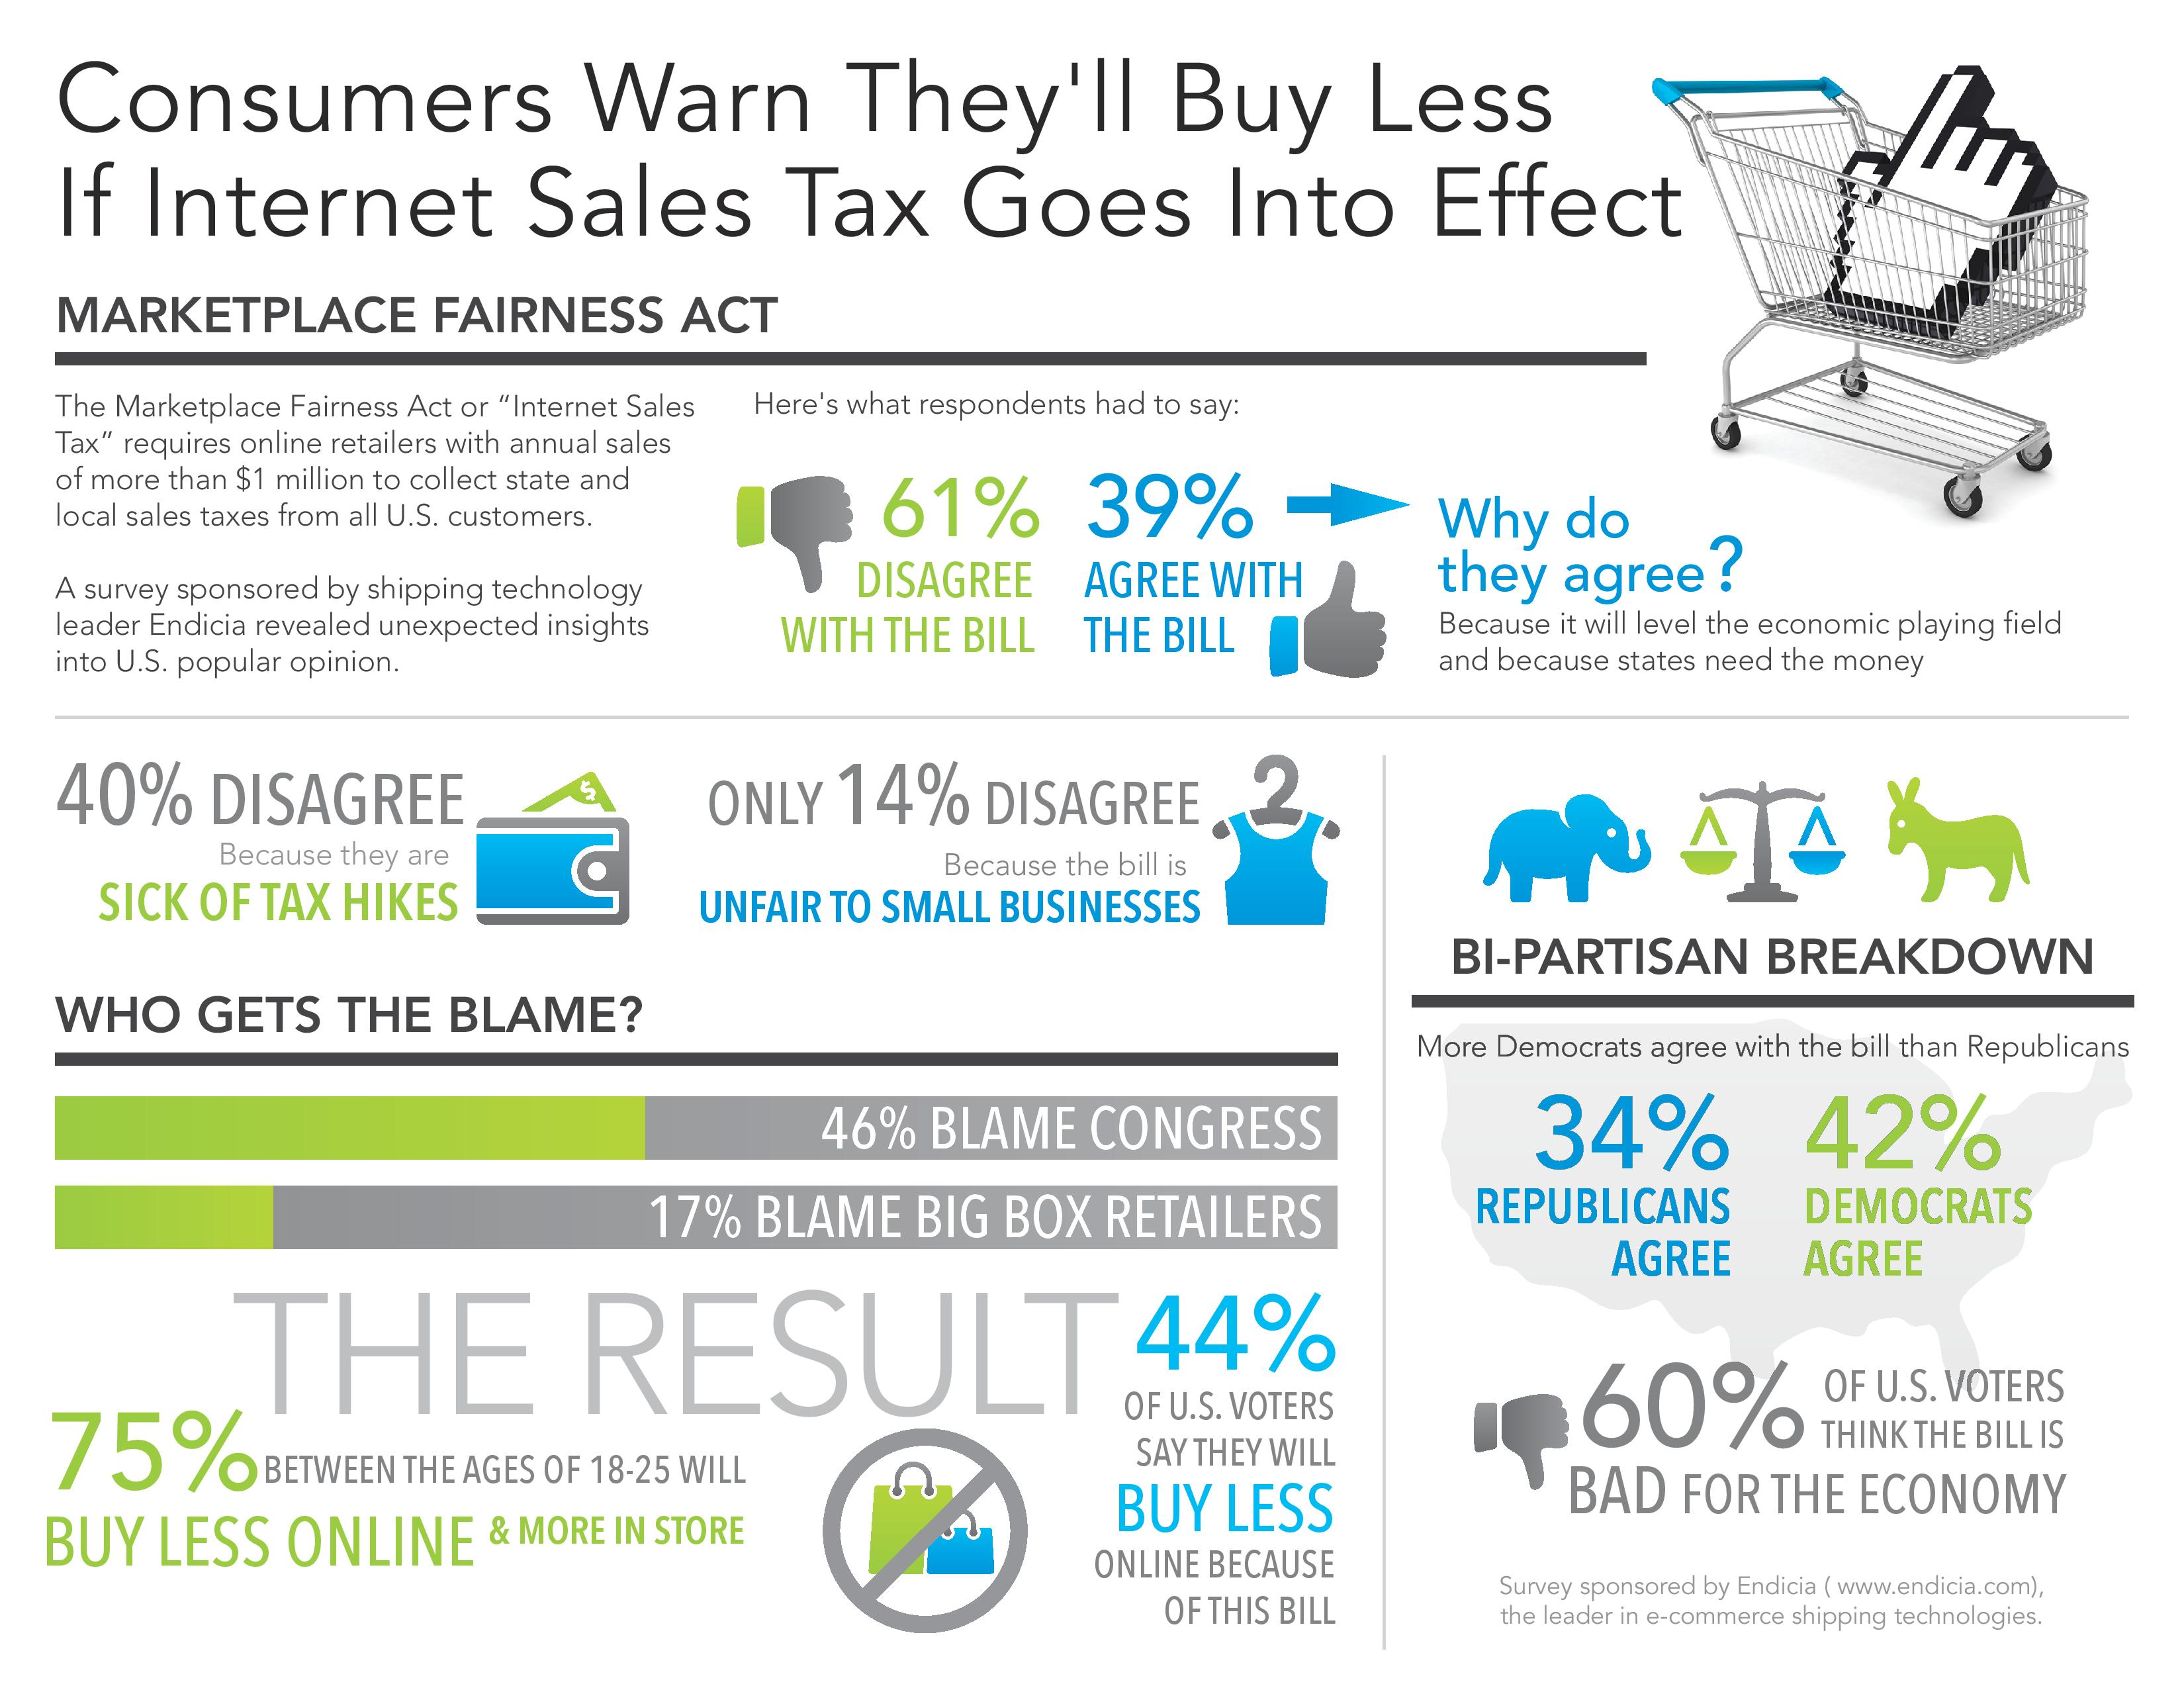 Questioning the Public's Reaction to the Proposed Internet Sales Tax